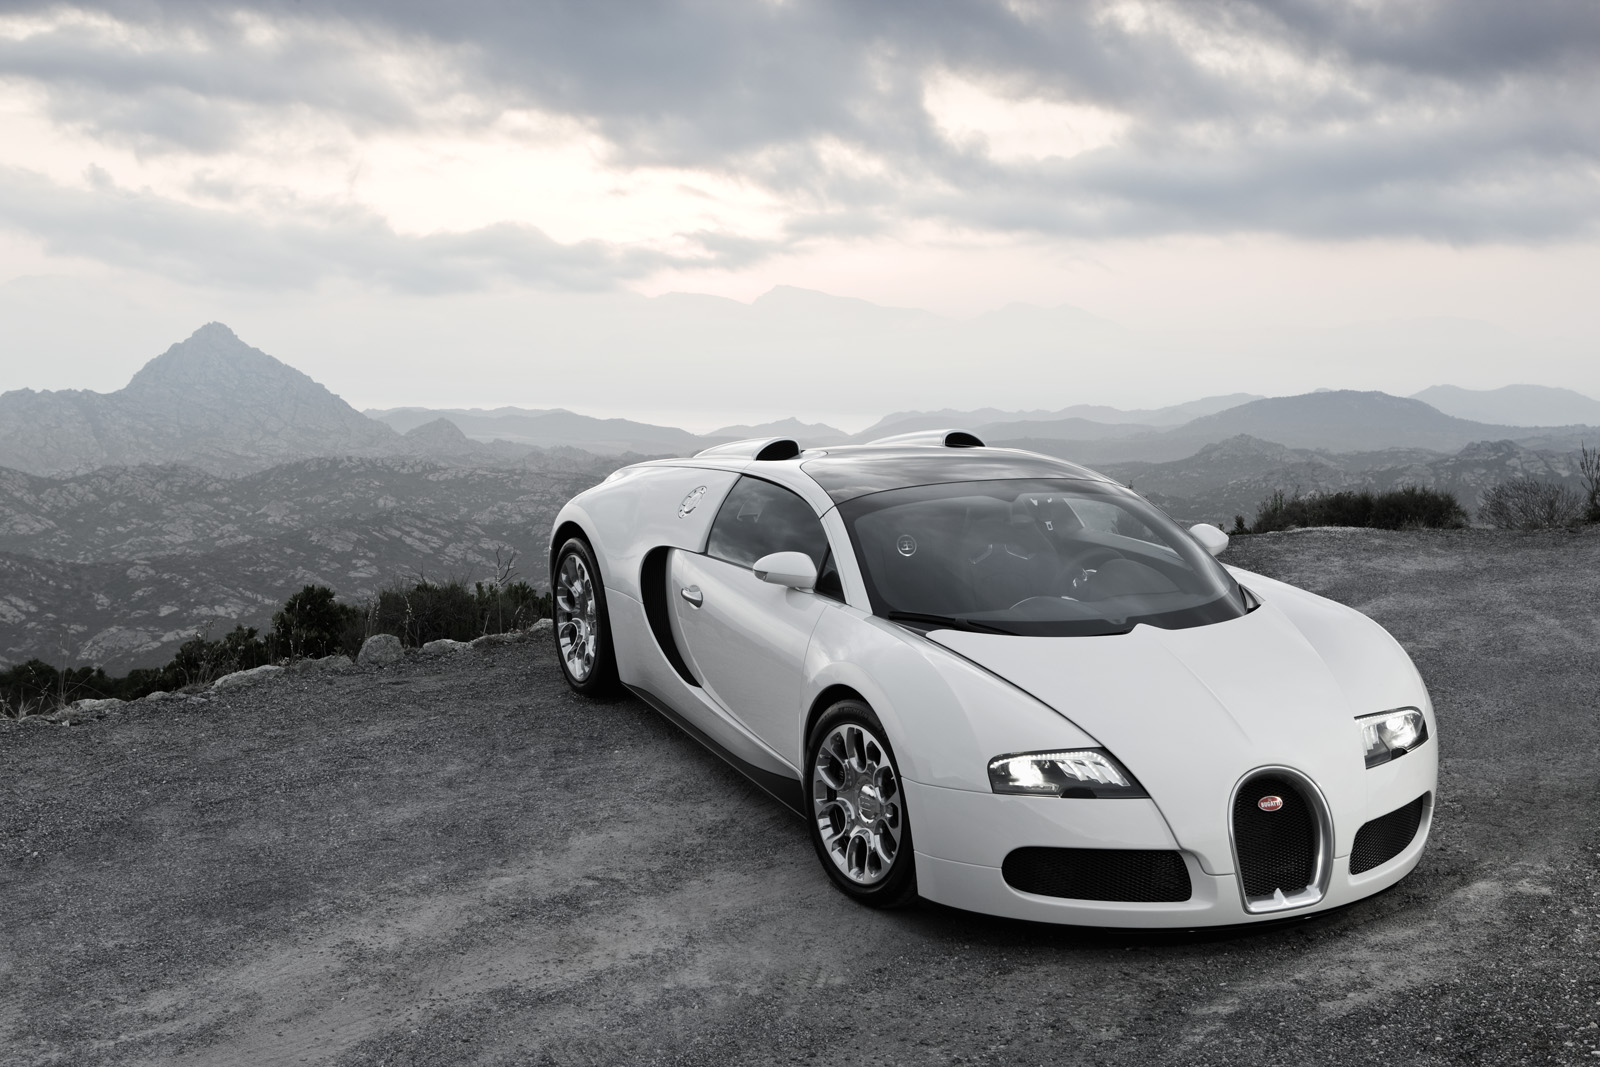 dr sous 2012 bugatti veyron 16 4 super sport. Black Bedroom Furniture Sets. Home Design Ideas